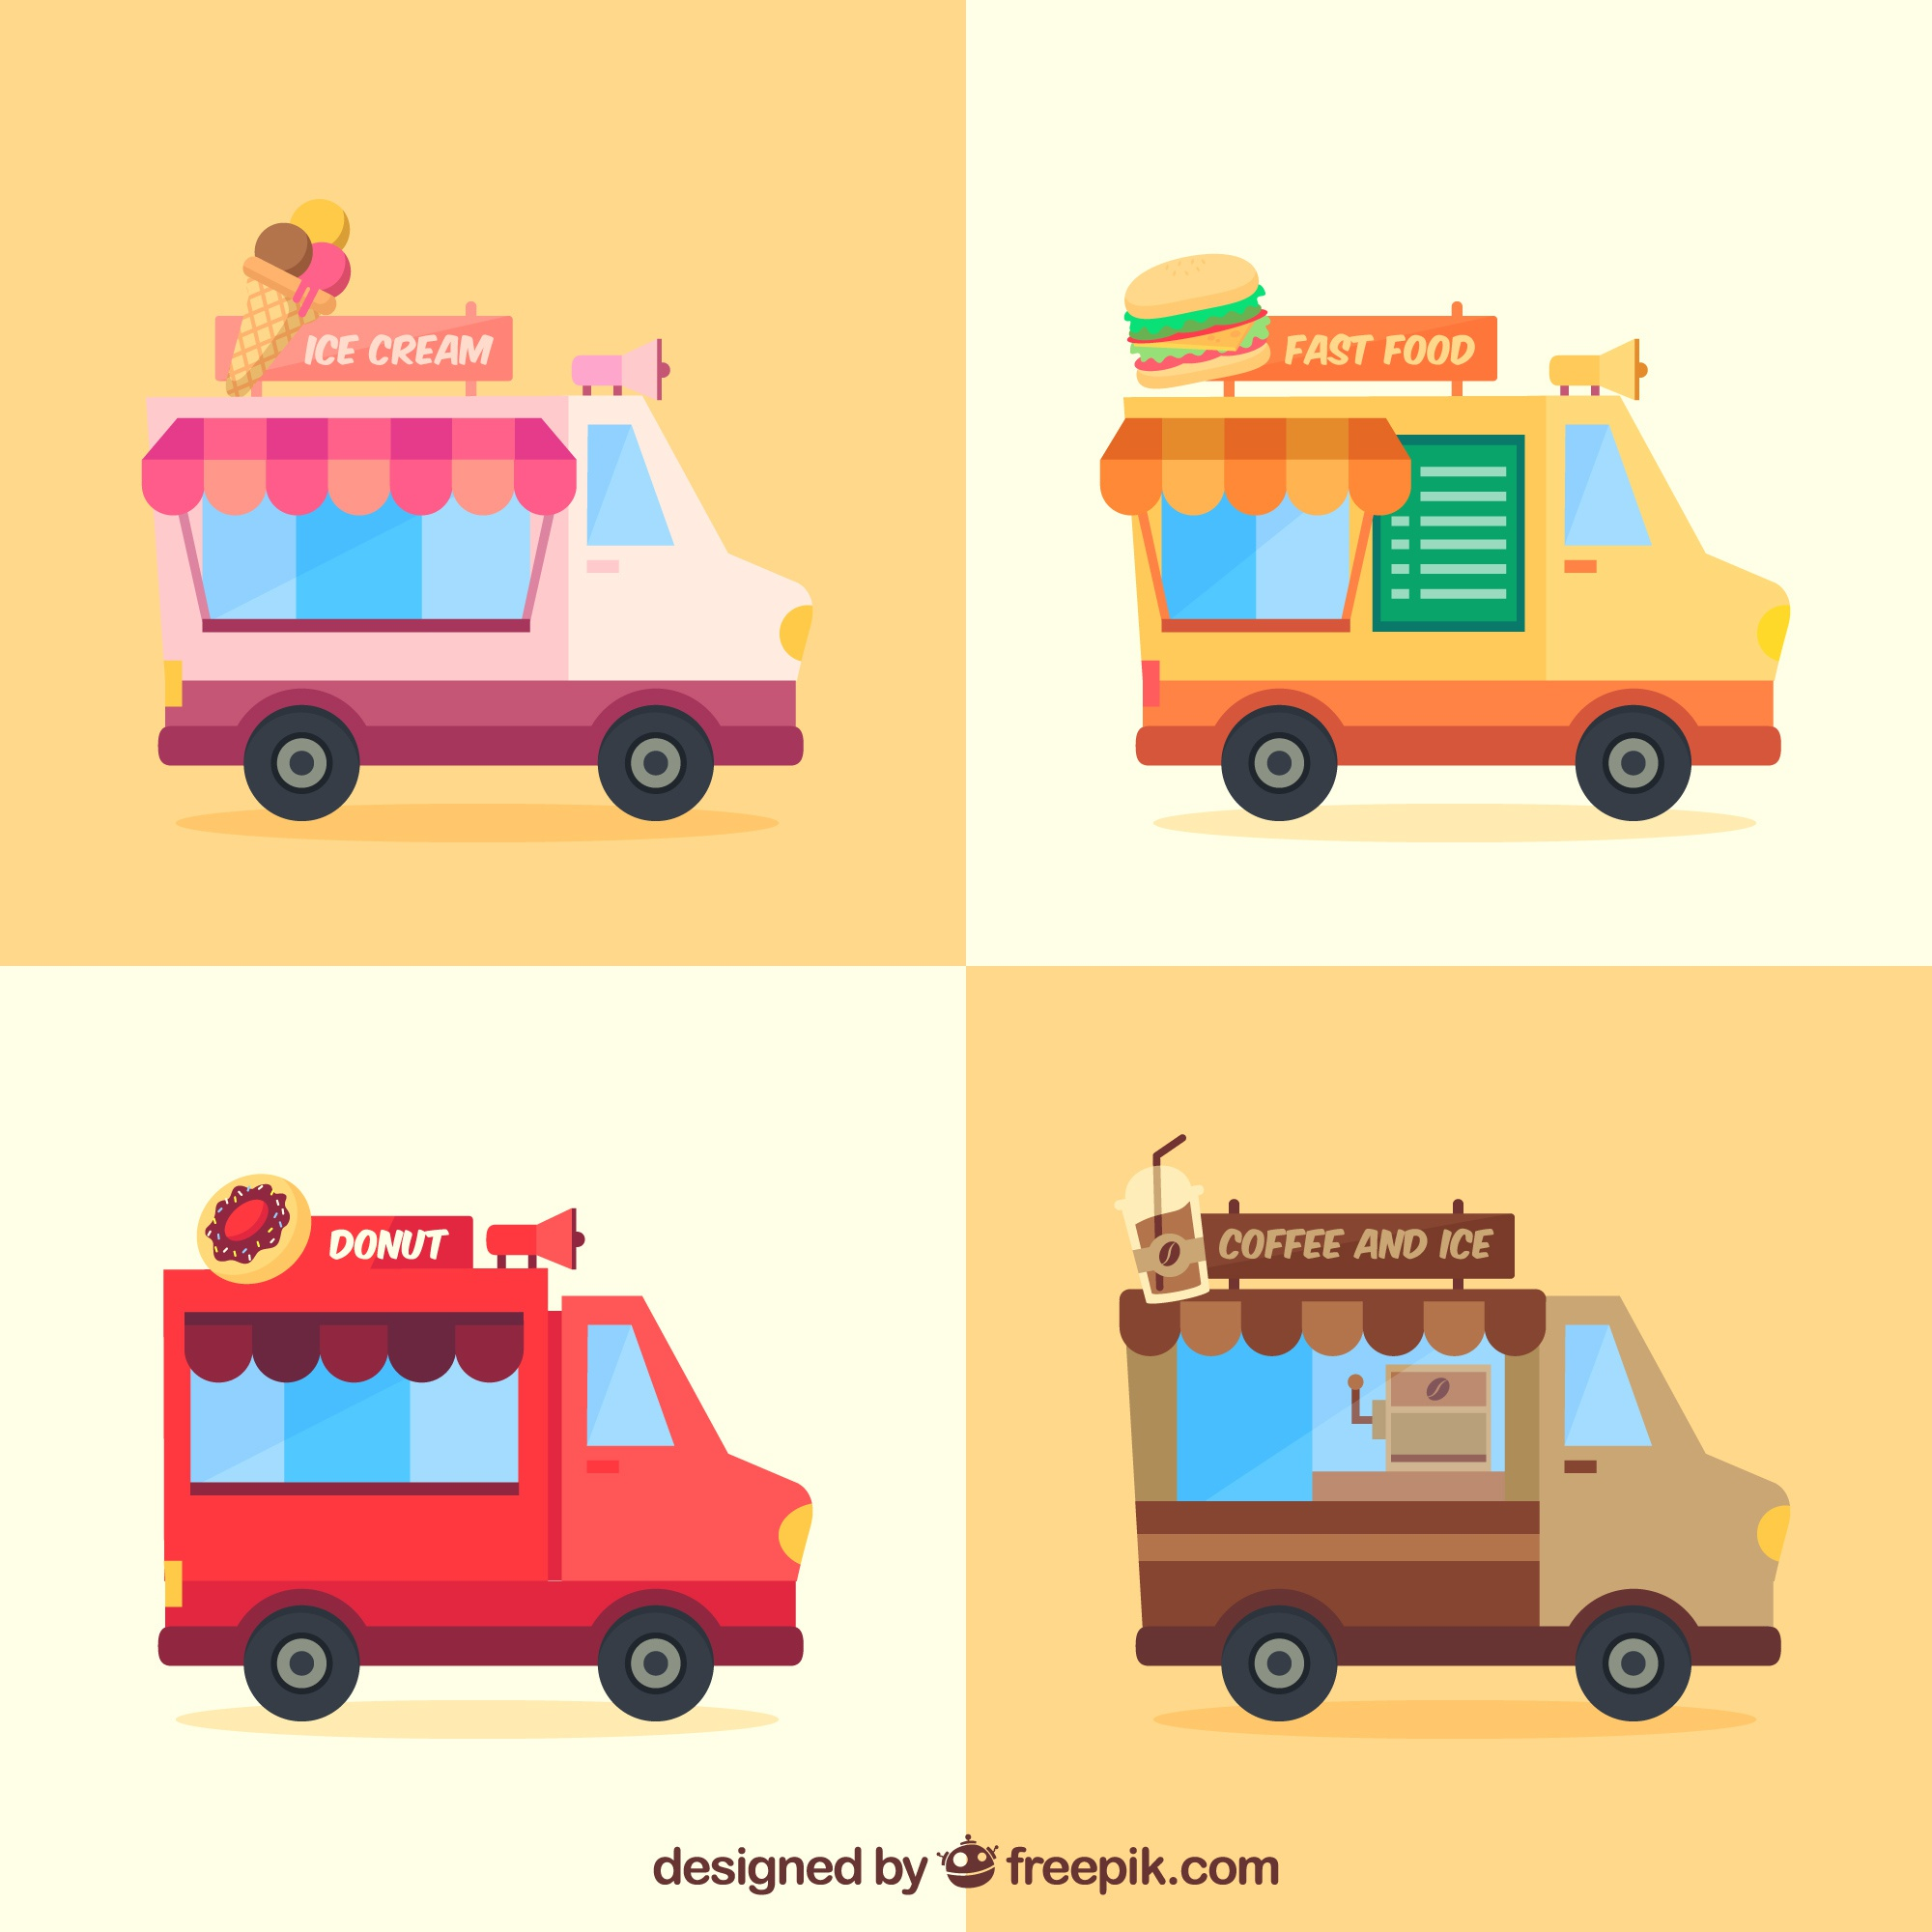 Fun pack of food truck with fast food